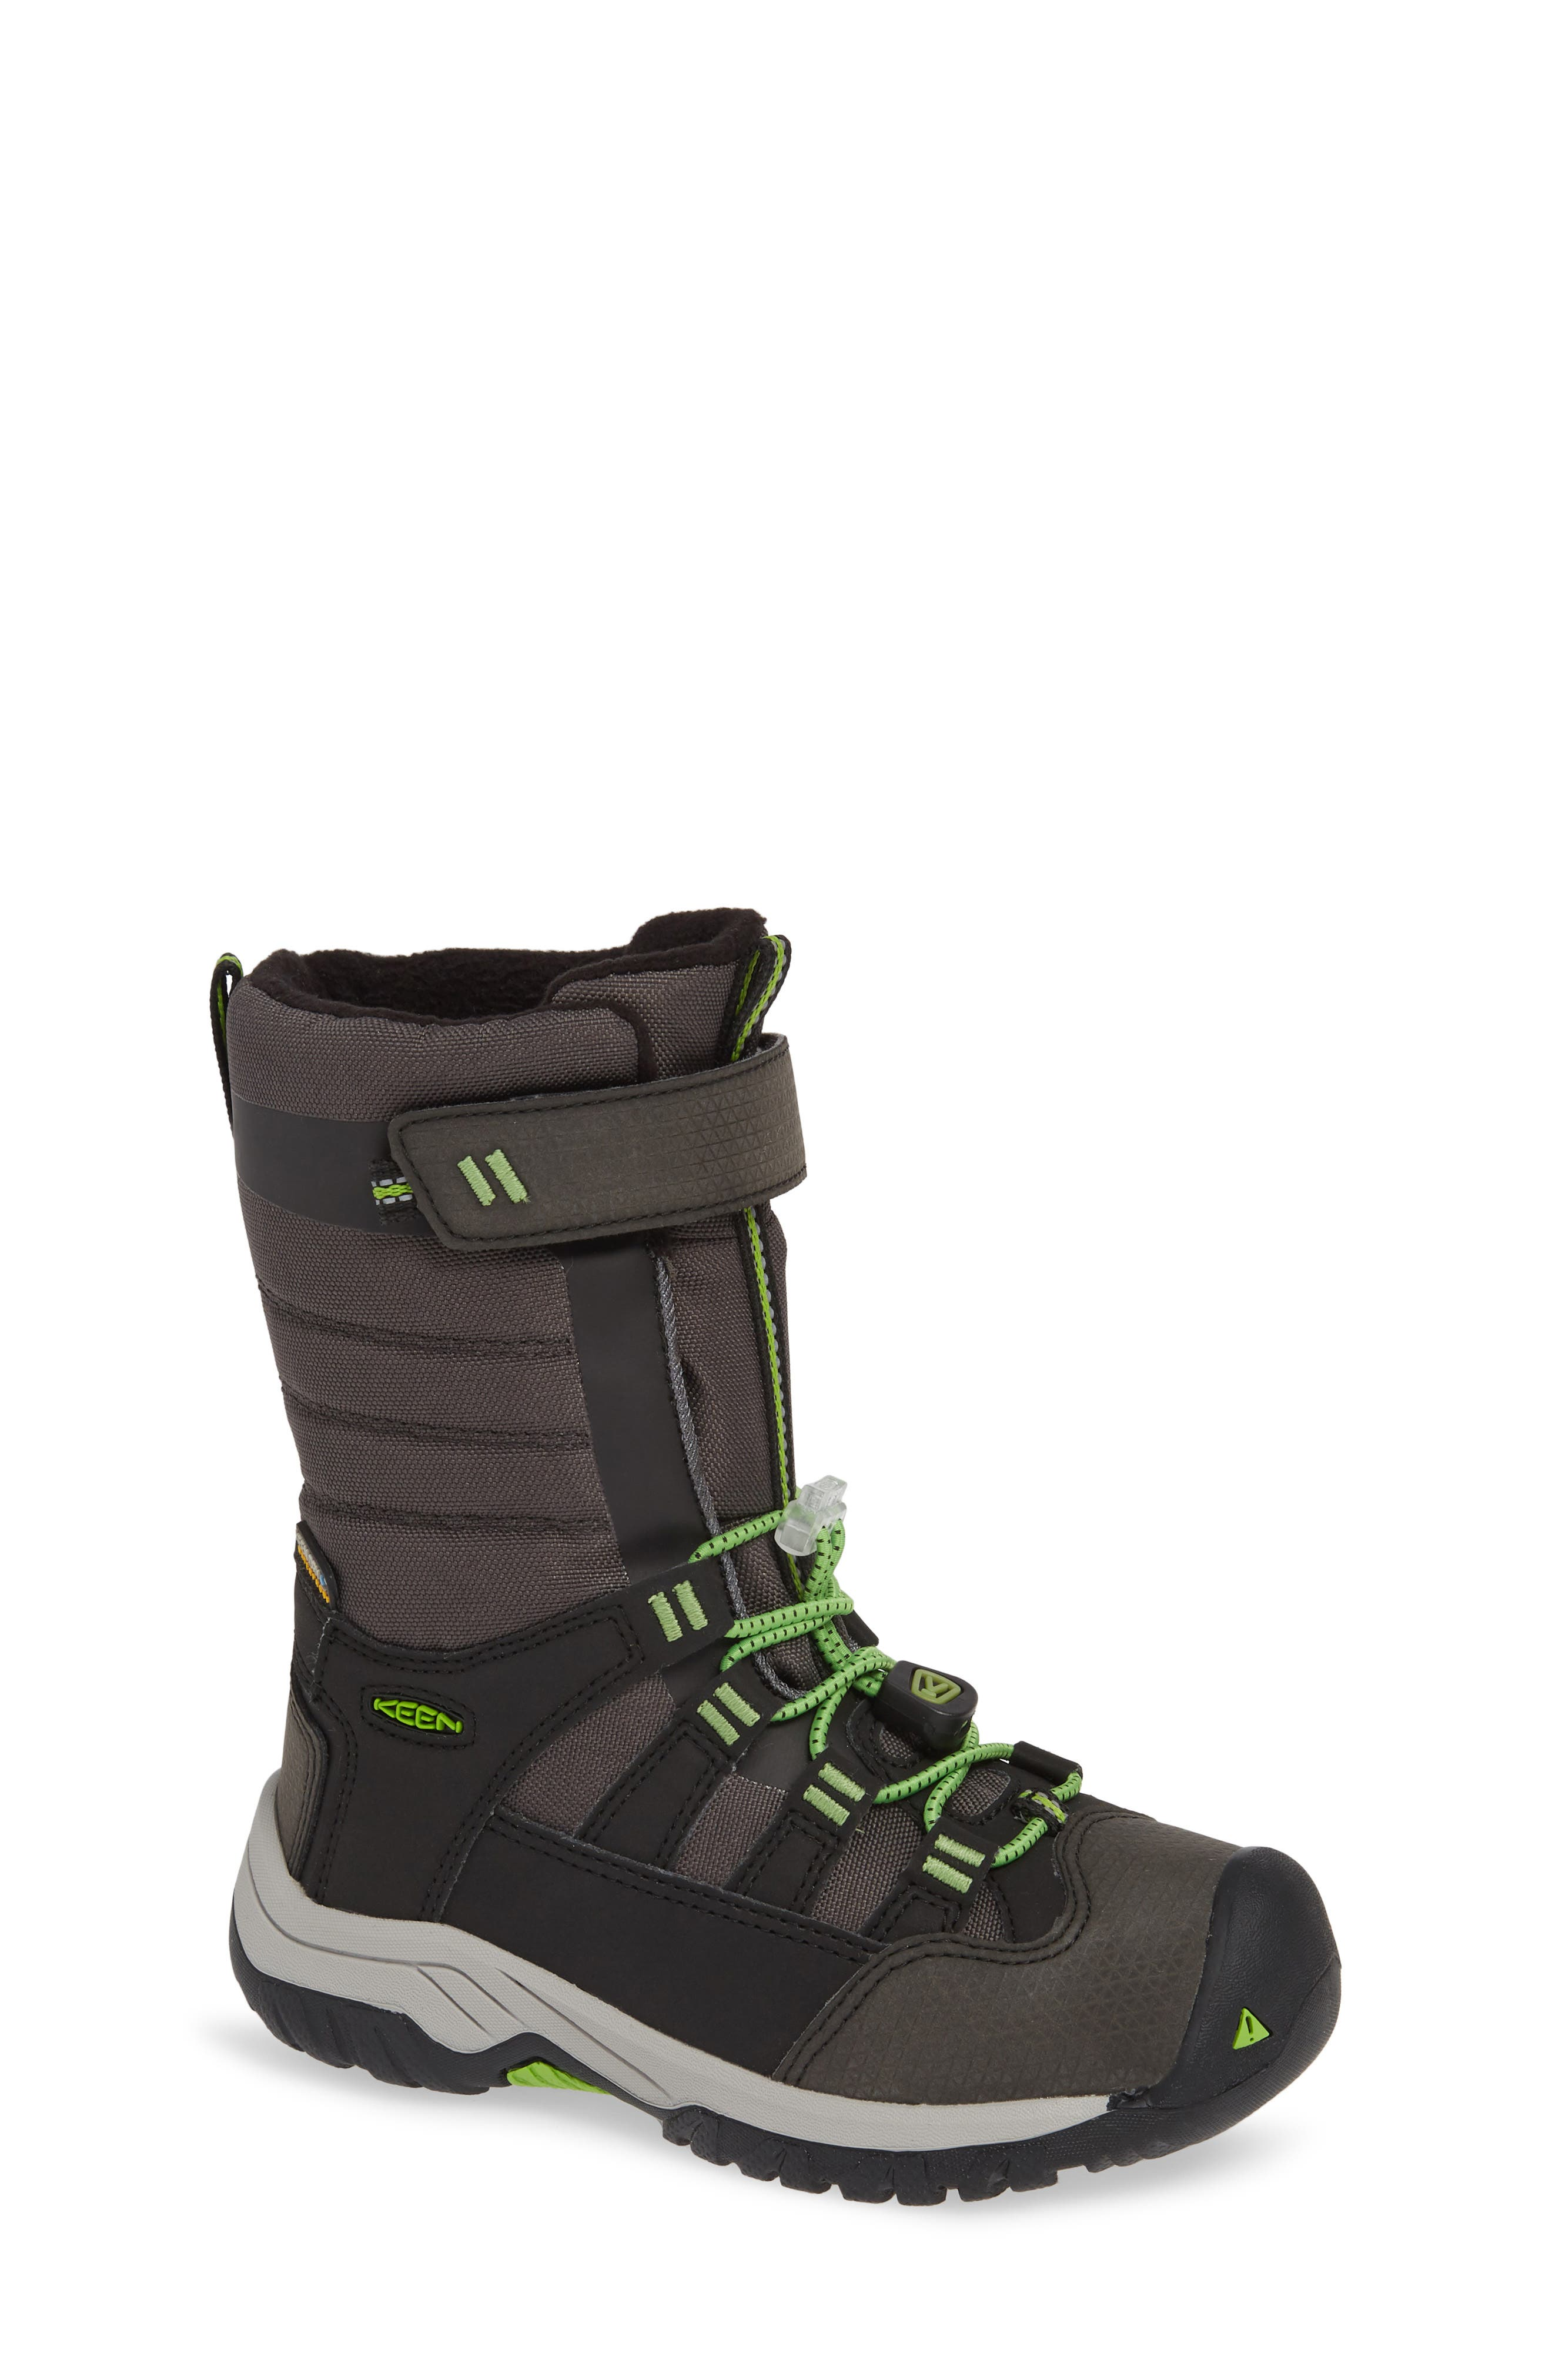 Winterport Neo Waterproof Insulated Boot,                             Main thumbnail 1, color,                             BLACK/ GREENERY